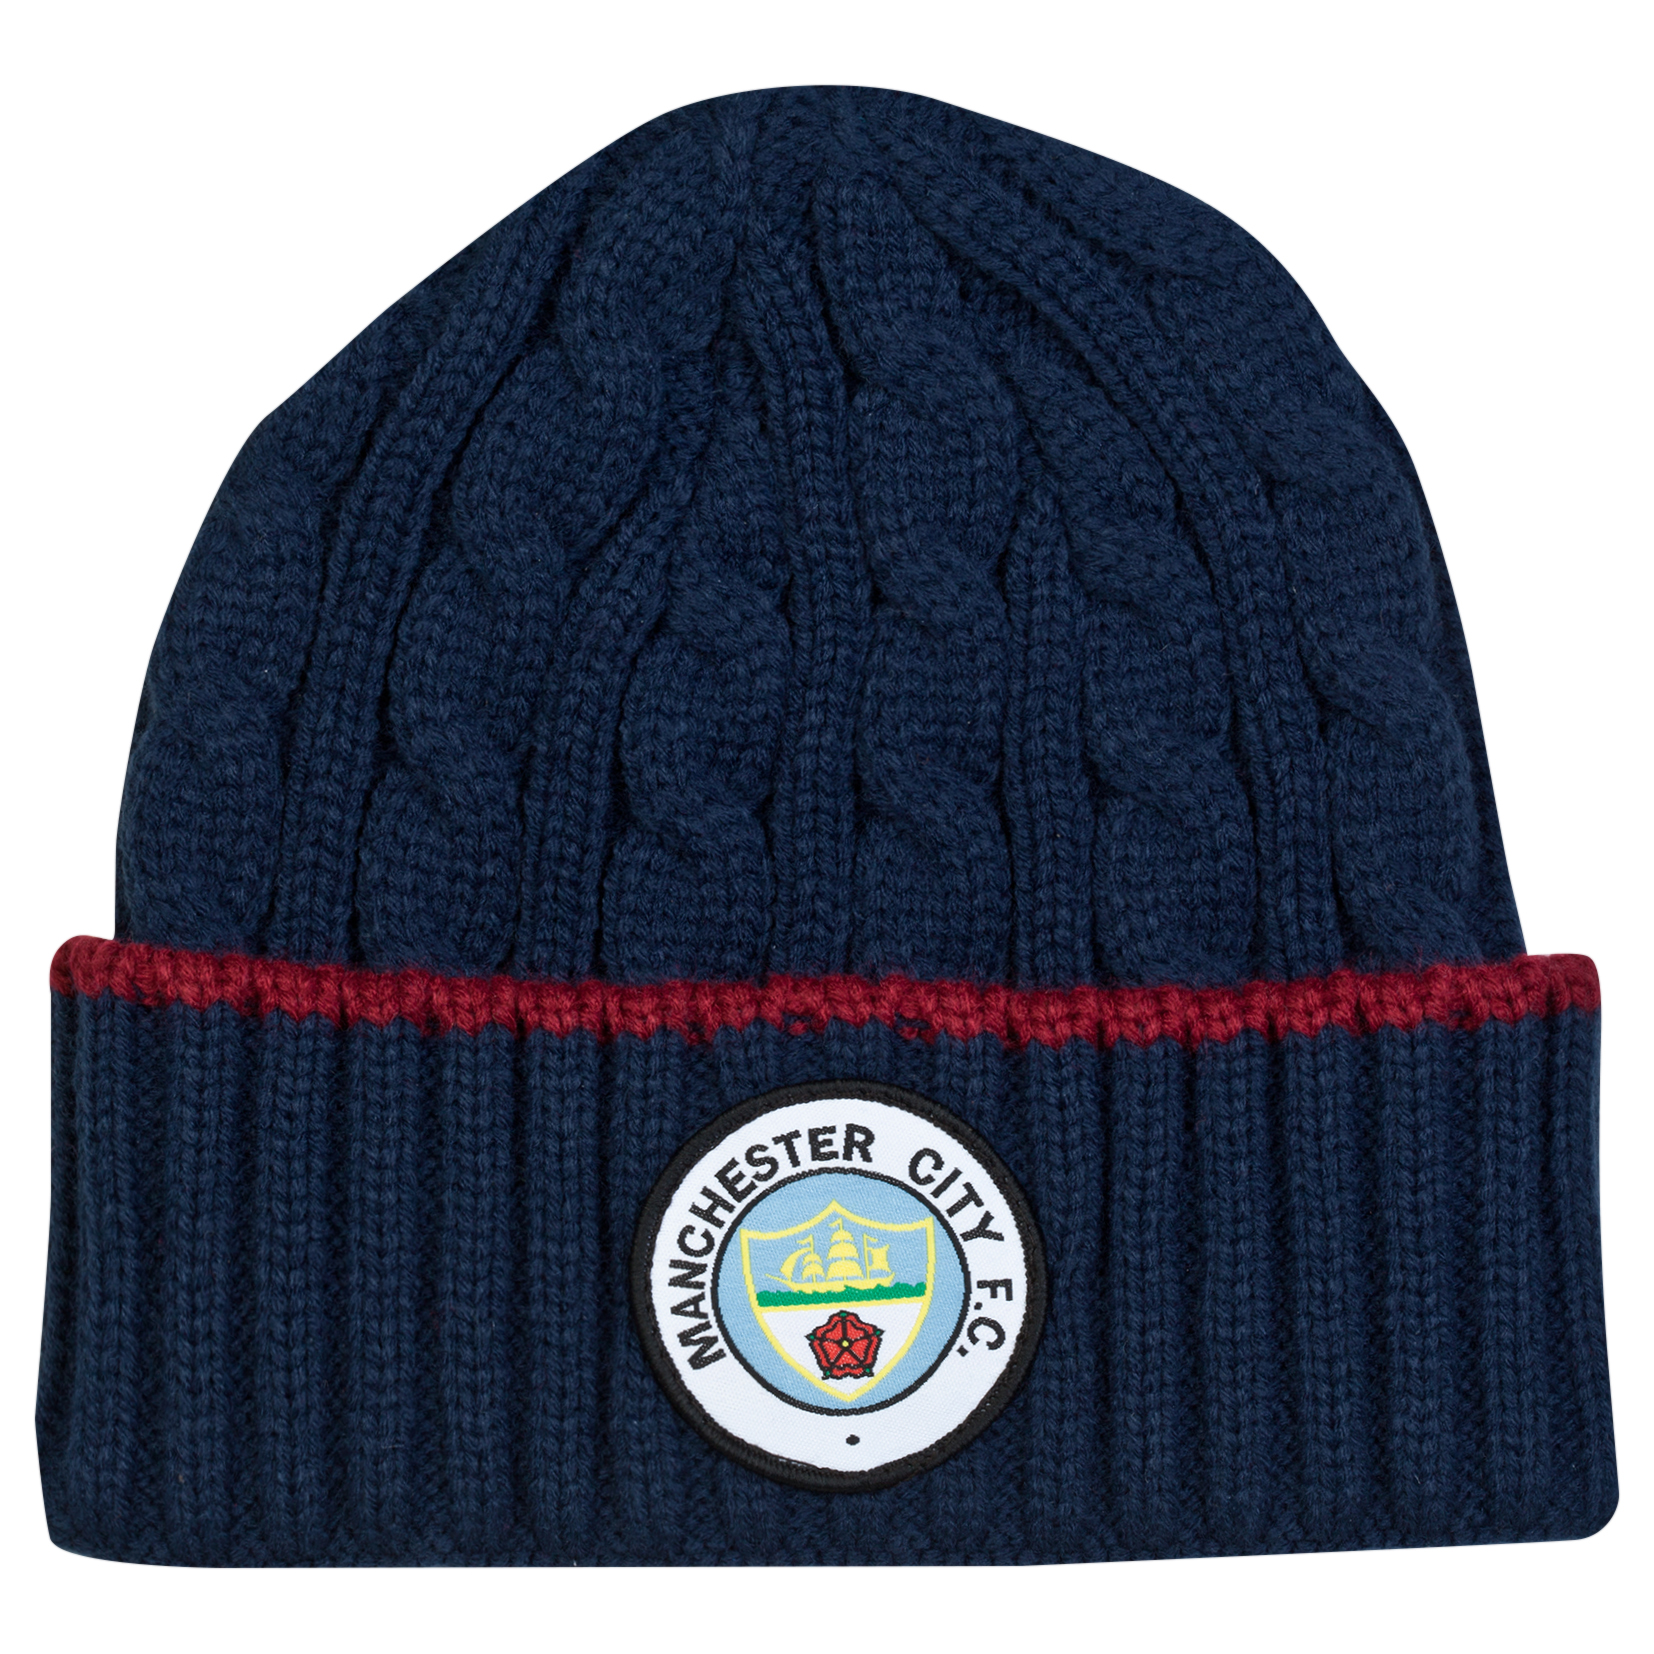 Manchester City Retro Hat - Navy - Adult